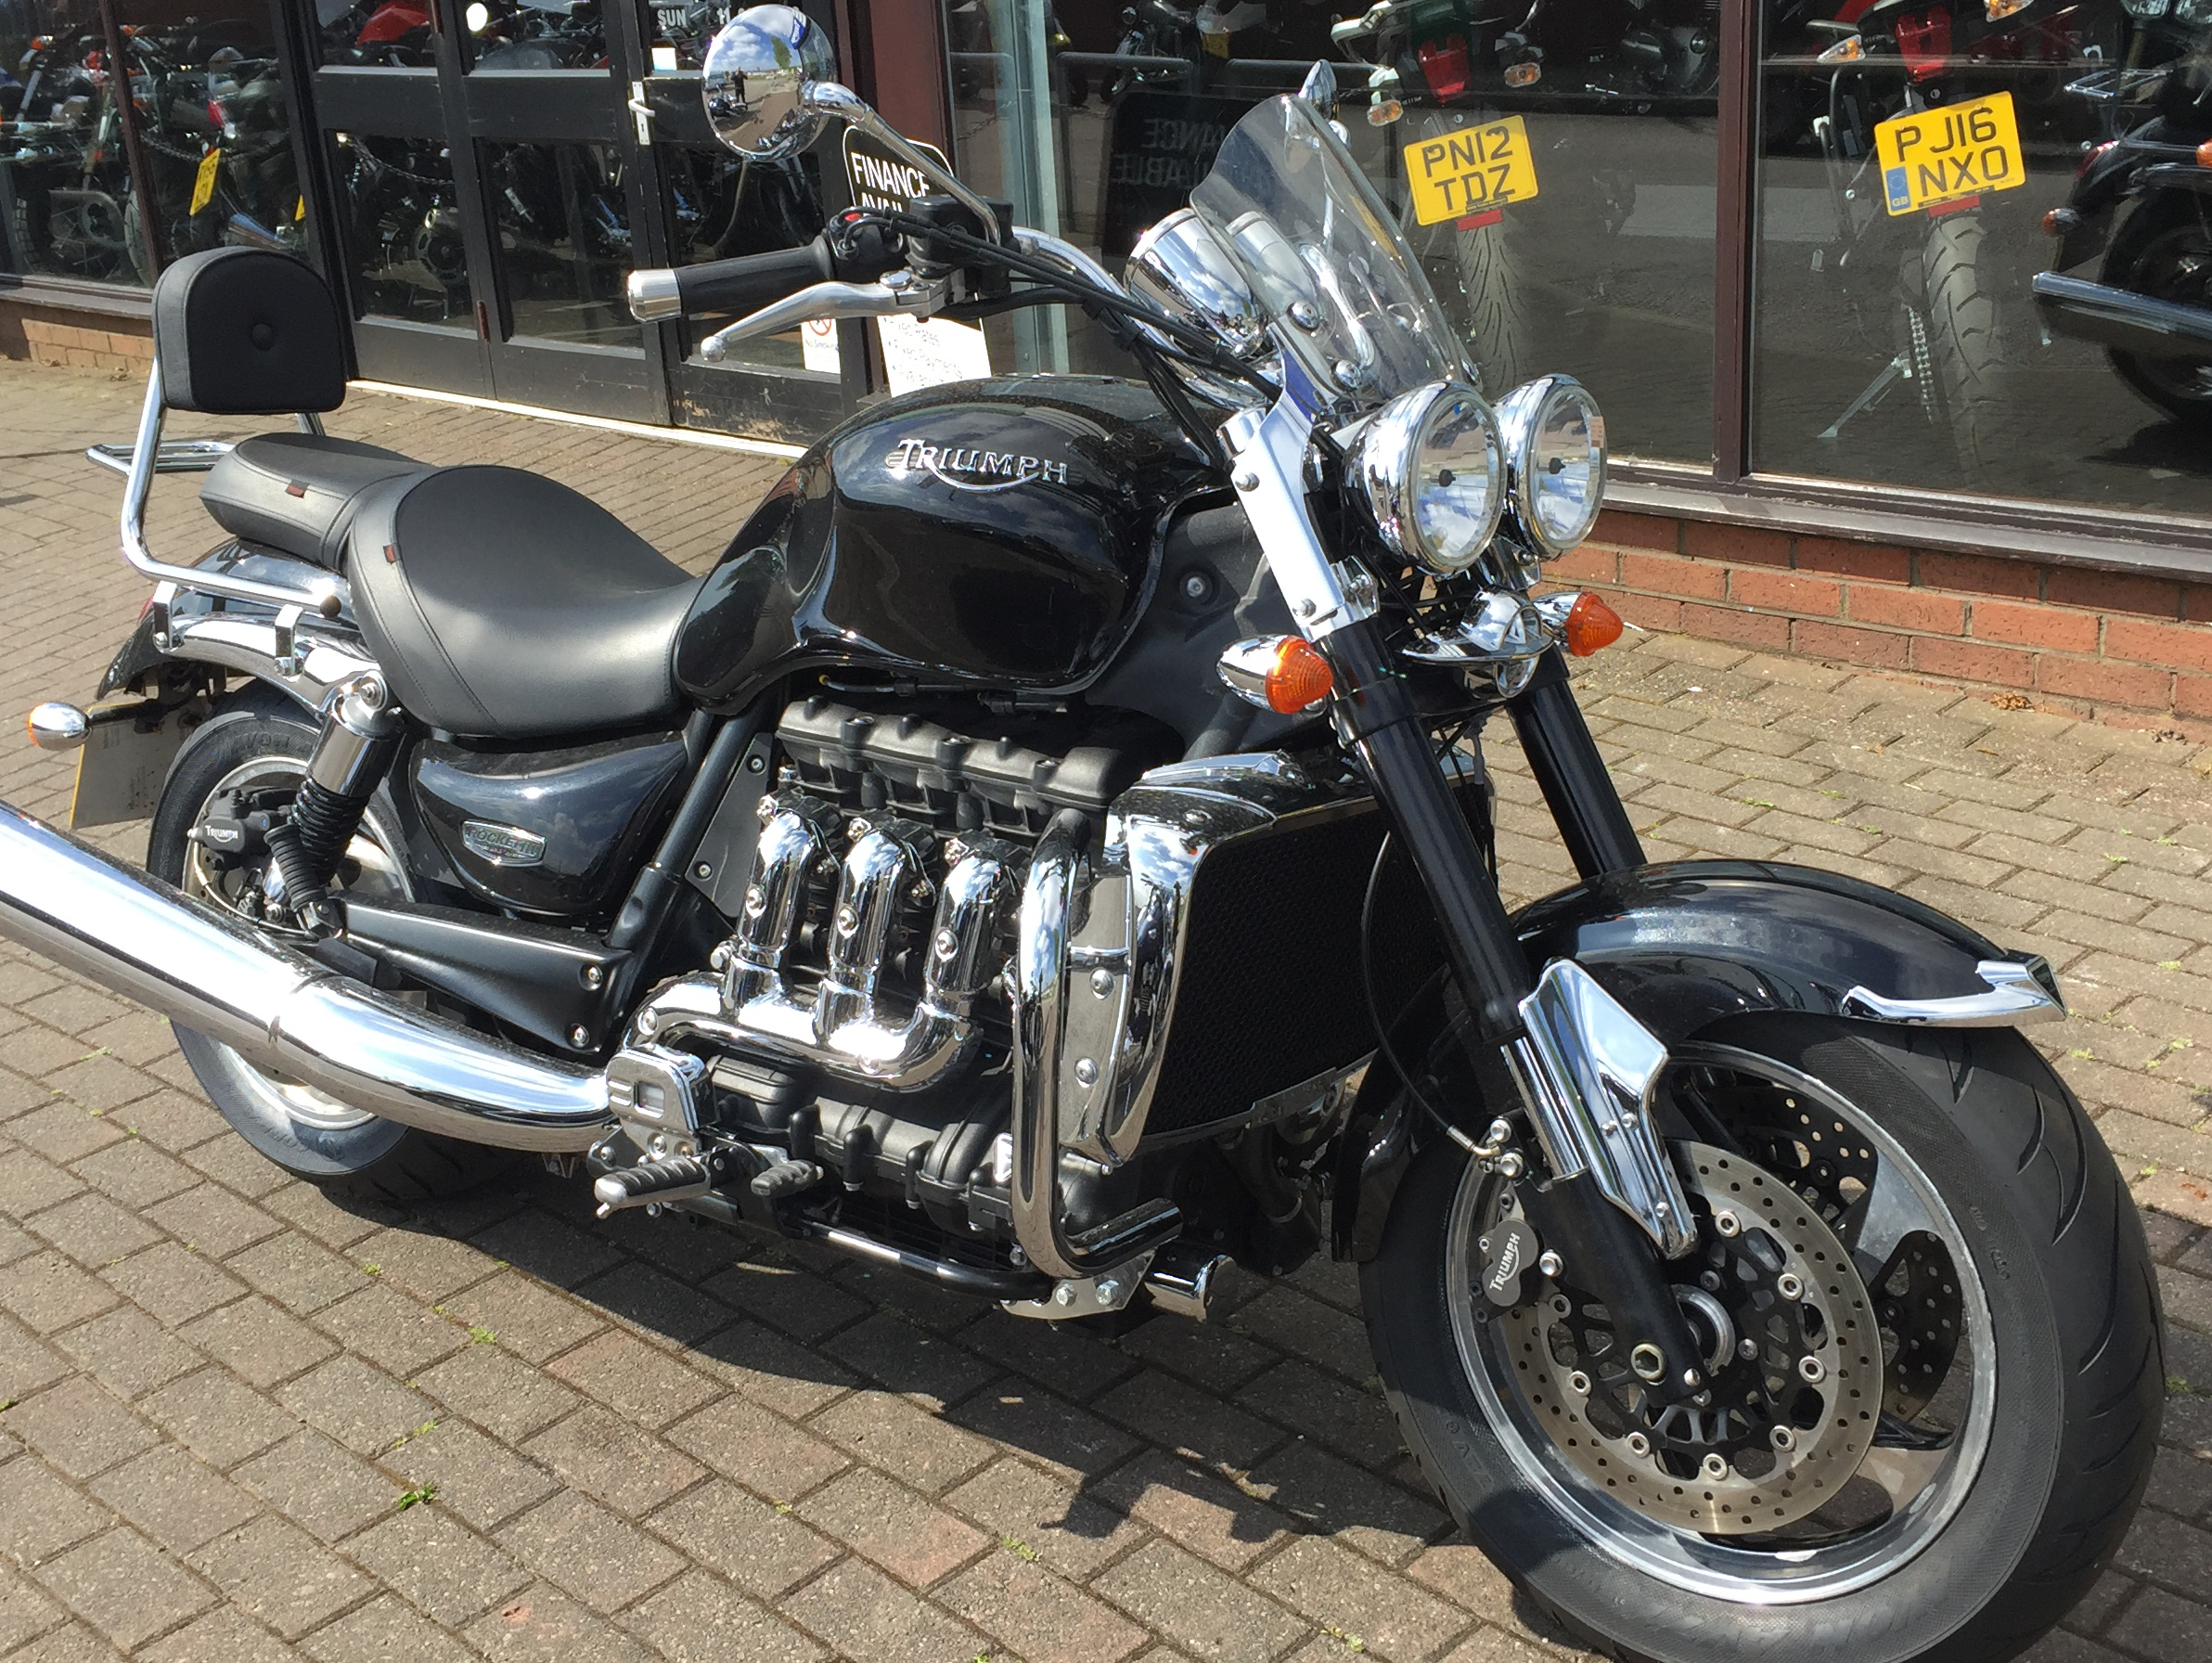 tales from the it side triumph rocket iii roadster totally absurd totally desirable. Black Bedroom Furniture Sets. Home Design Ideas